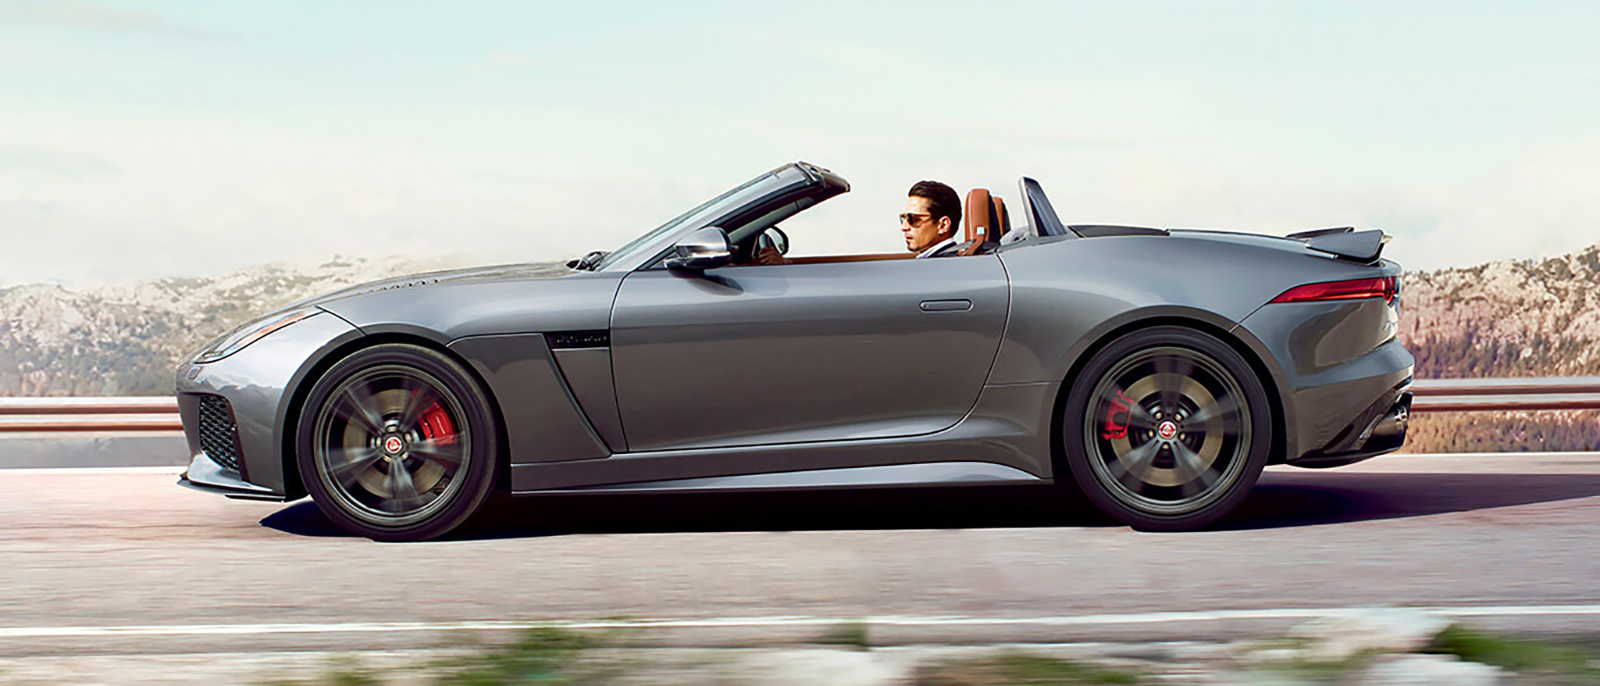 2017 Jaguar F-Type Convertible driving